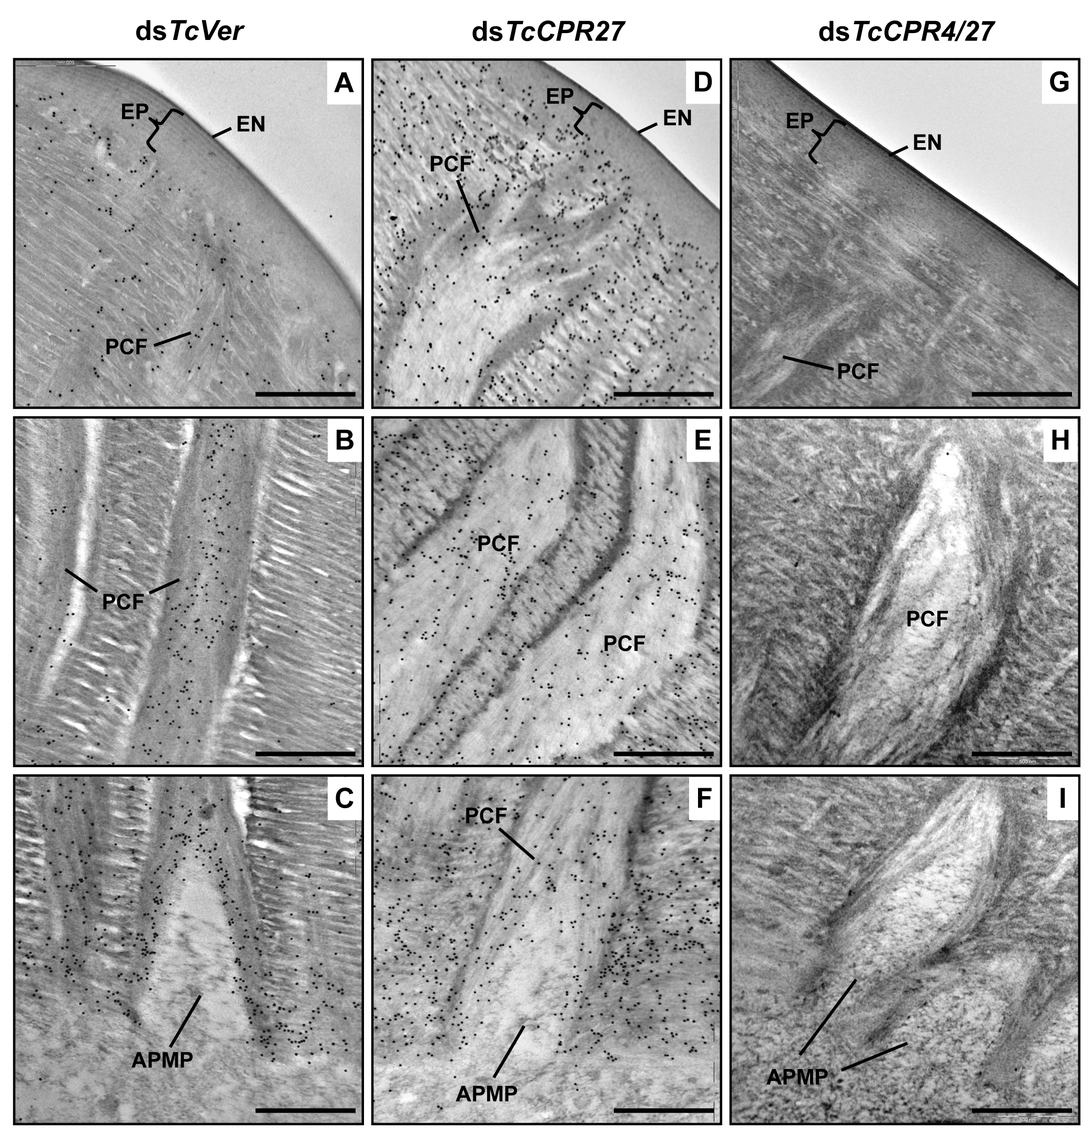 Localization of TcCPR4 protein in elytral cuticle from TcCPR27-deficient insects.